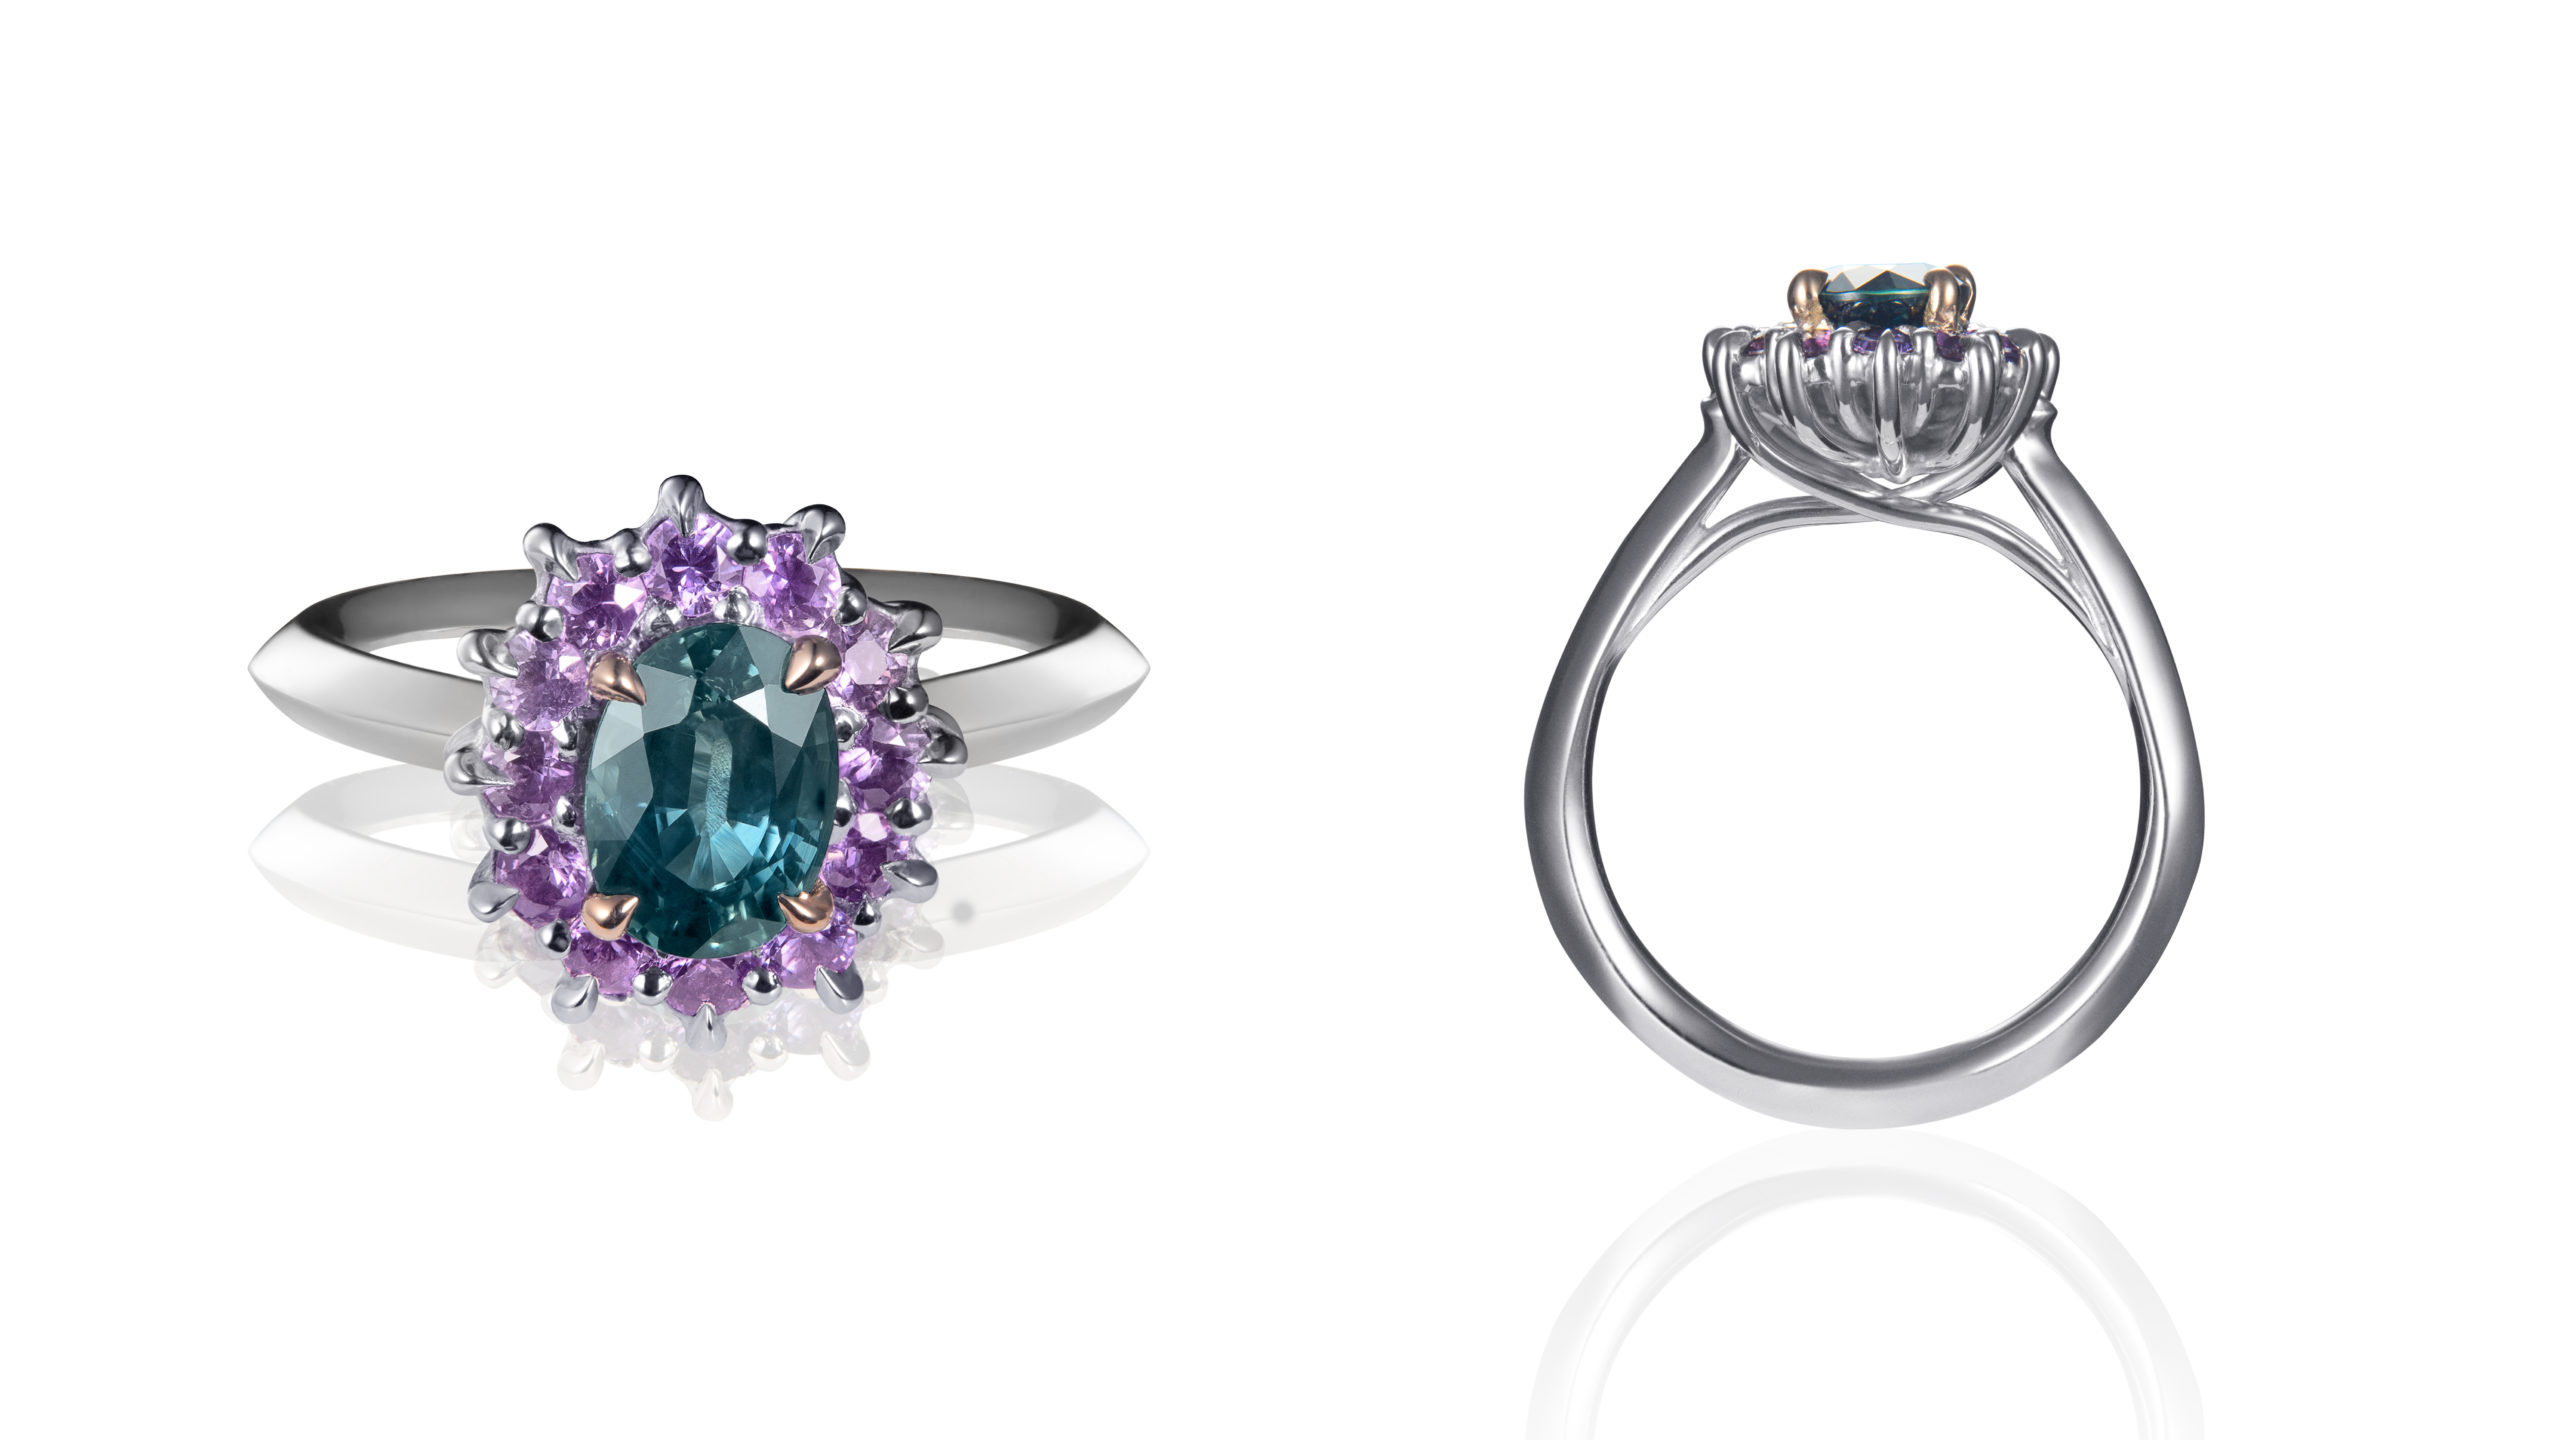 Wenbo Zhao-Premium Jewellery Catalog Image-Green and Purple Sapphire Ring